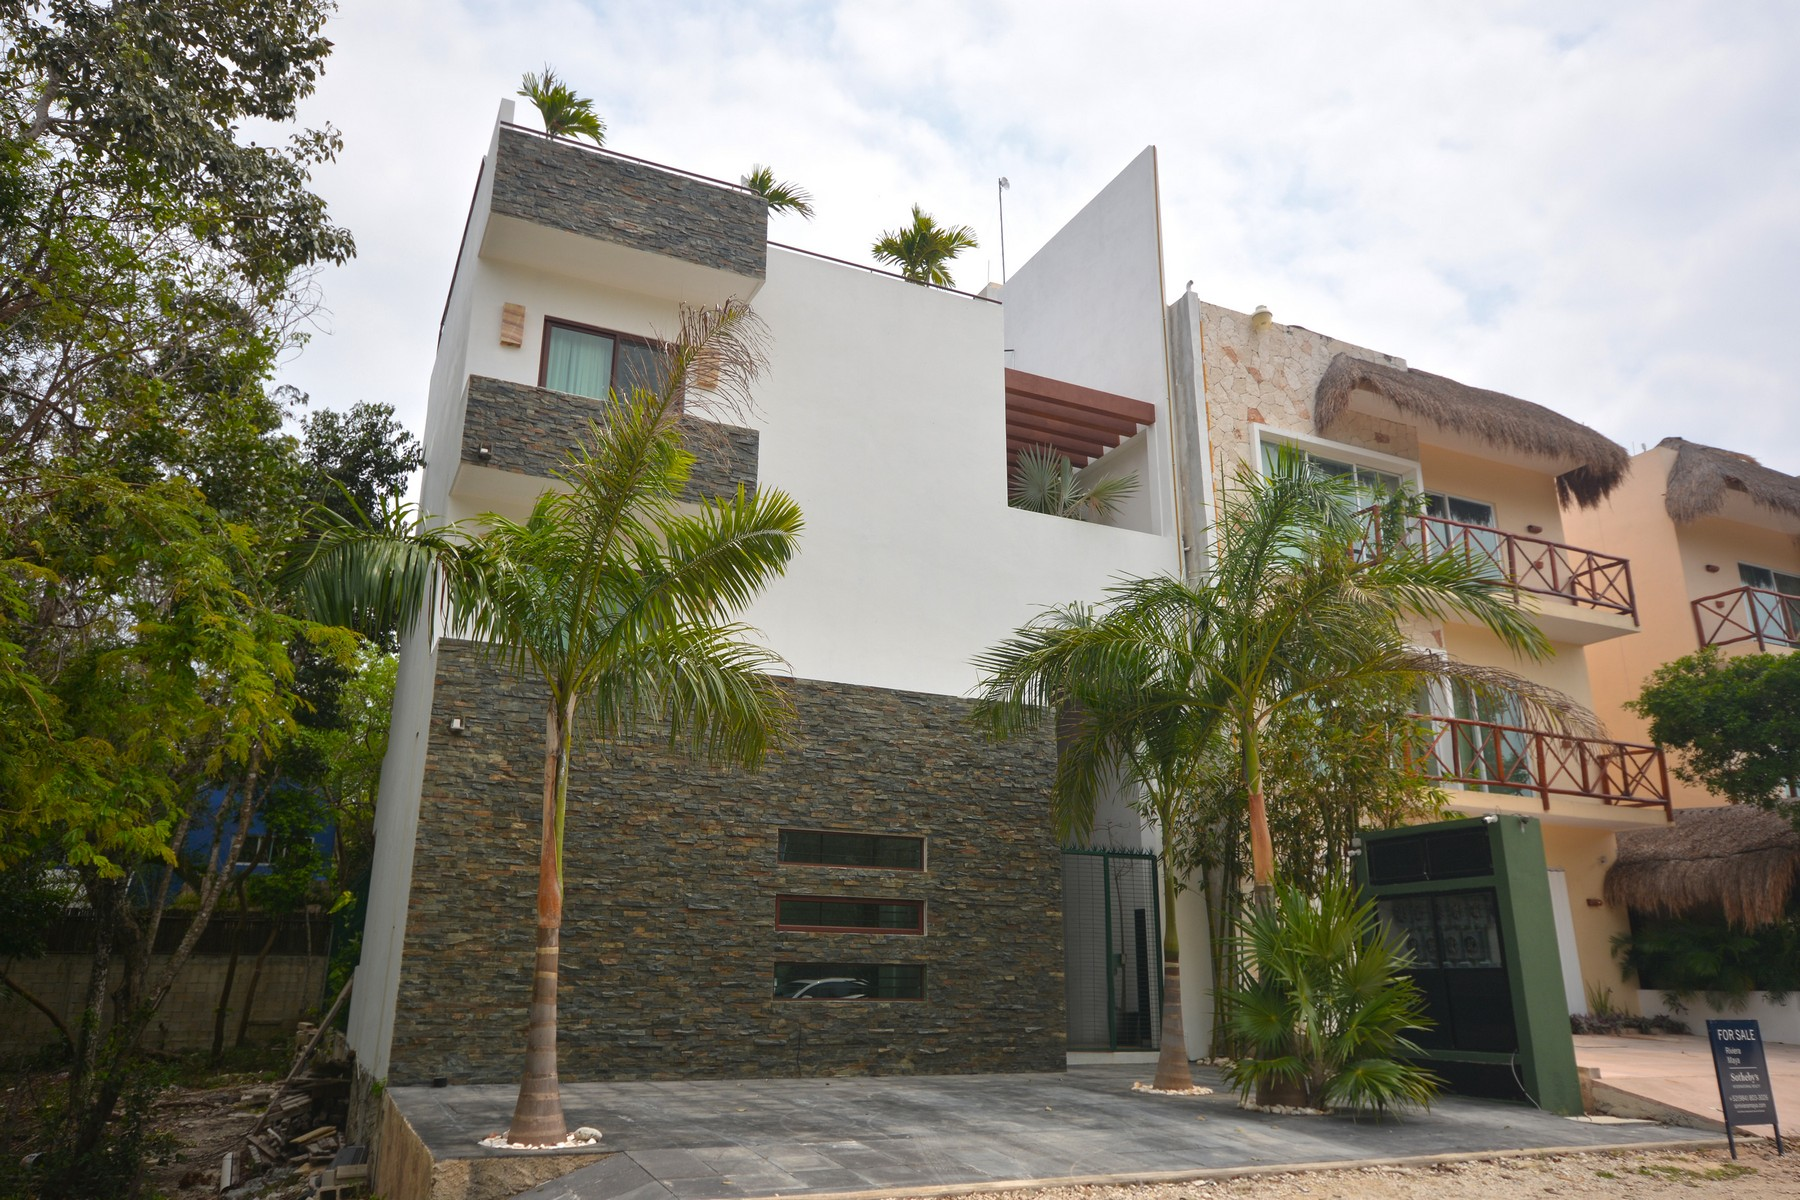 Apartment for Sale at MODERN GREEN VIEW BUILDING Neptuno Oriente, Lte 016 Tulum, 77760 Mexico